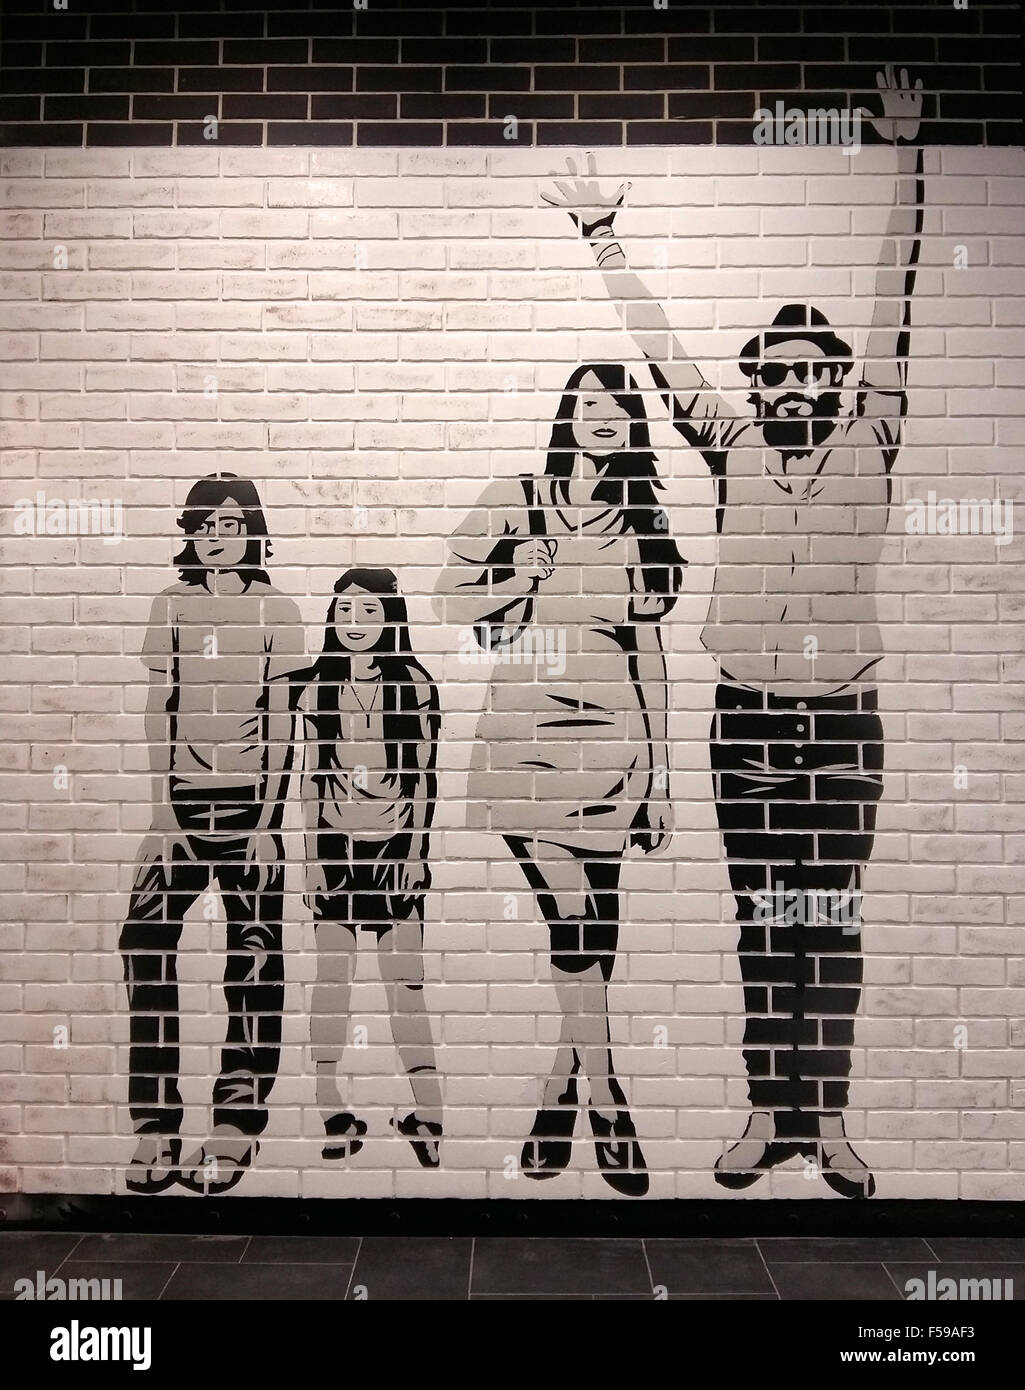 Black Brick Wall new grunge white and black brick wall with painted happy family